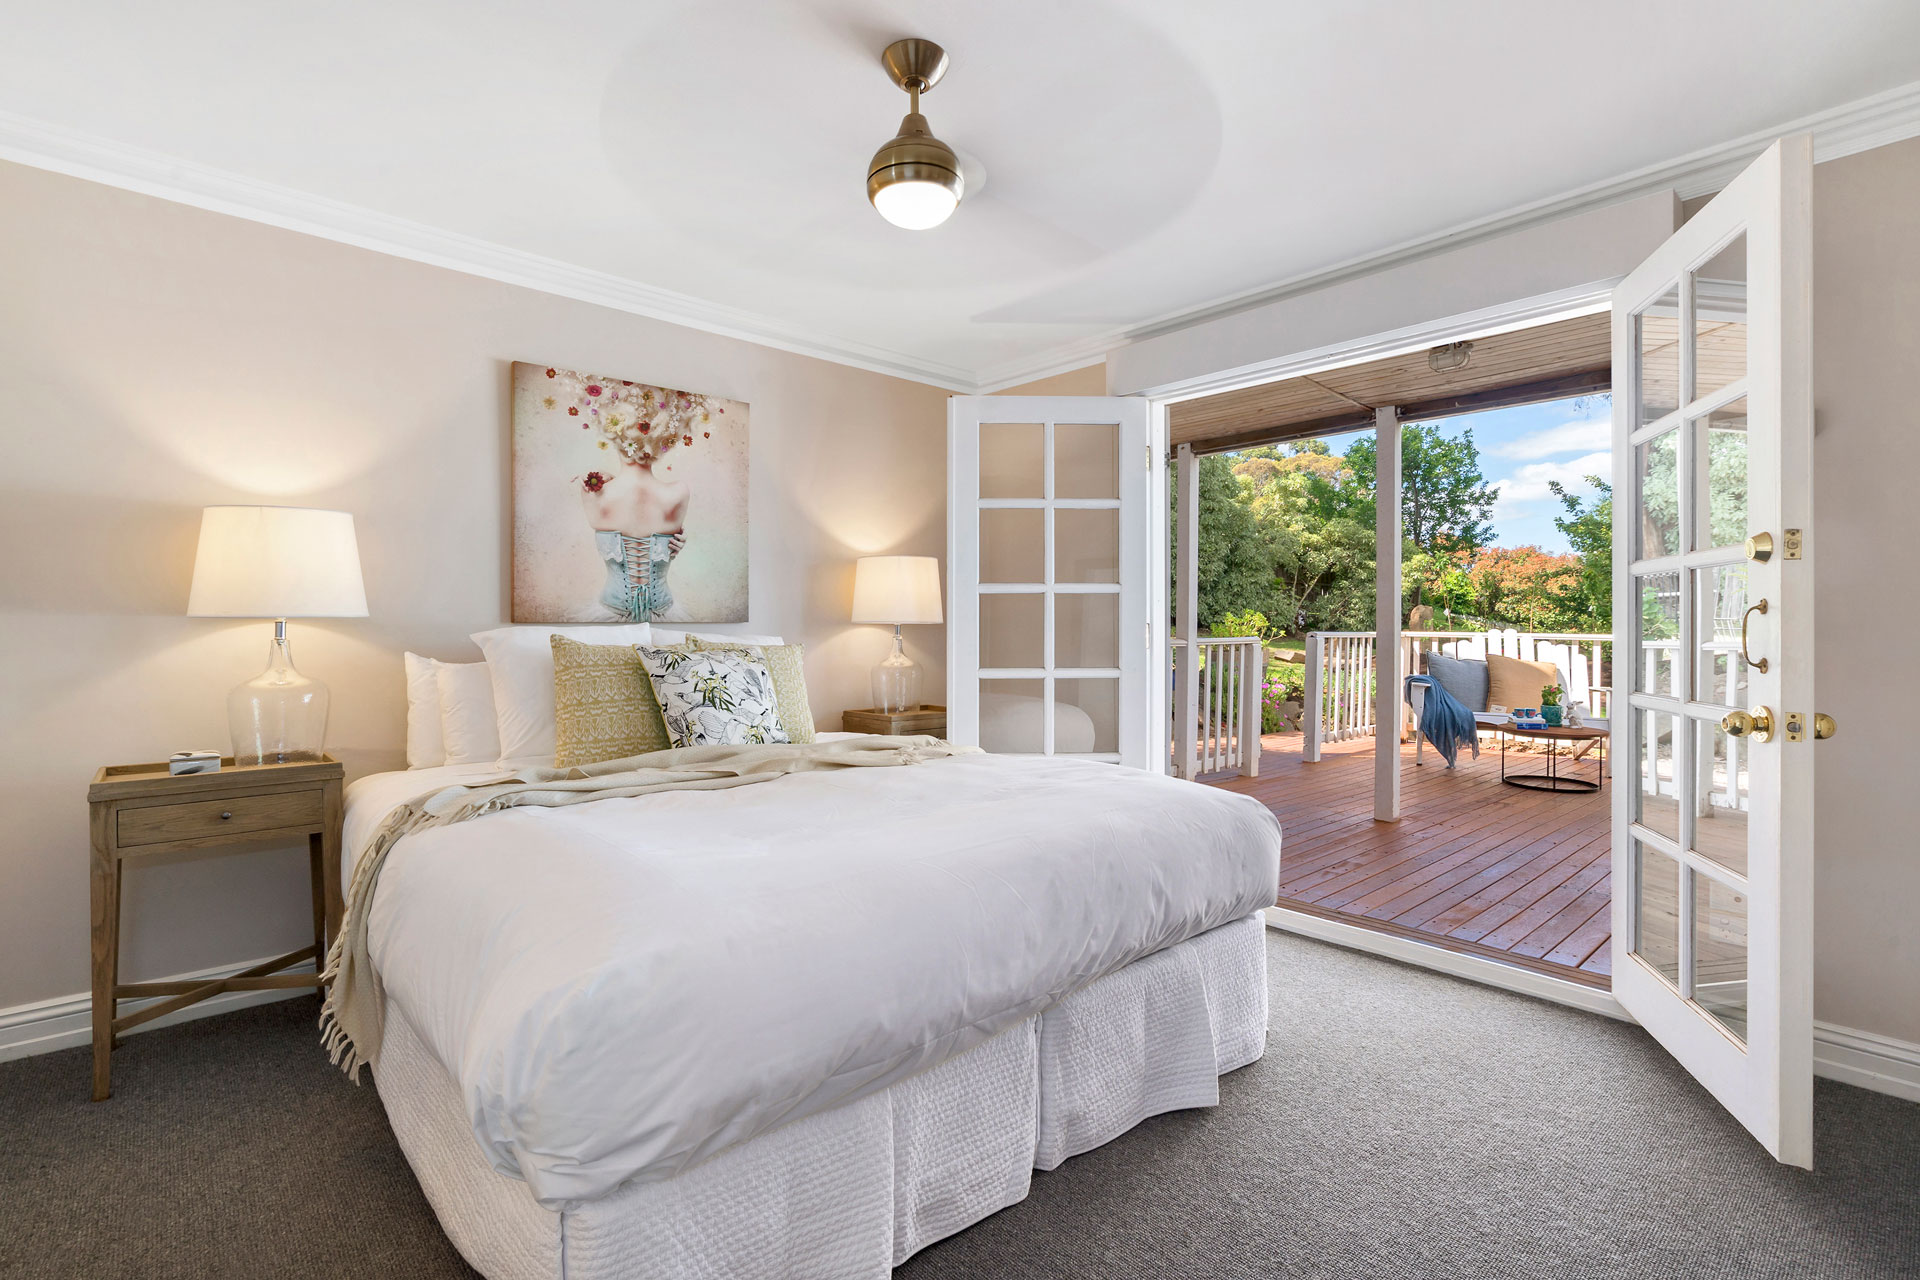 Daylesford Group Accommodation